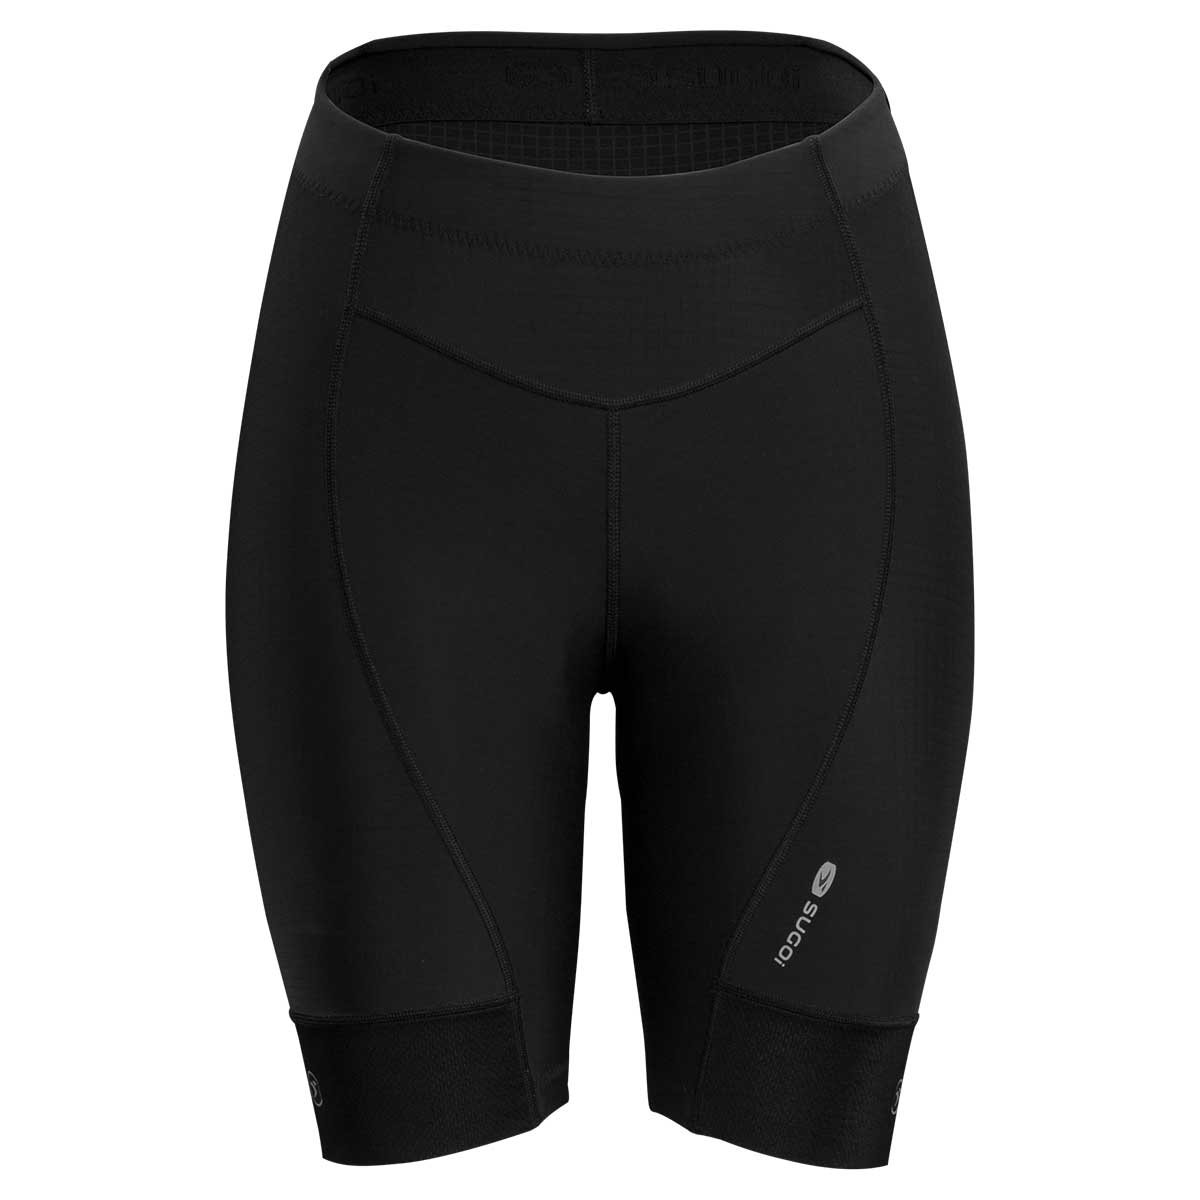 Sugoi men's Evolution Bike Short in Black